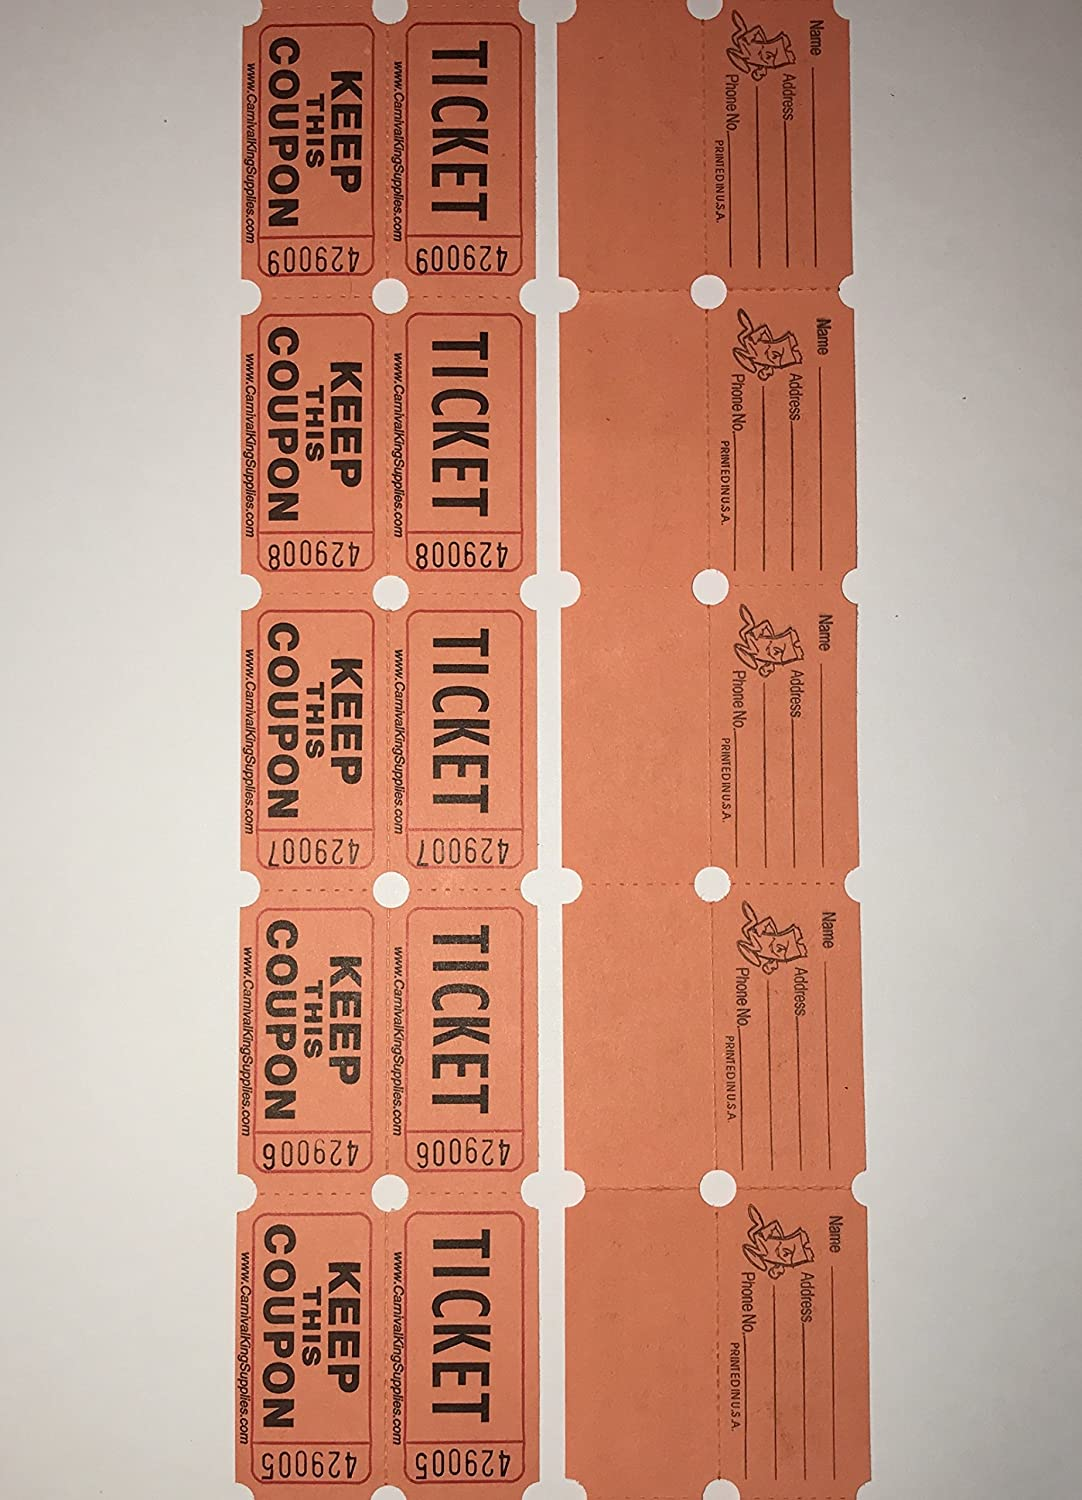 100 Orange Colored Raffle Tickets Double Roll 50/50 Carnival Fair Split The Pot One Hundred Consecutively Numbered Fundraiser Festival Event Party Door Prize Drawing Perforated Stubs